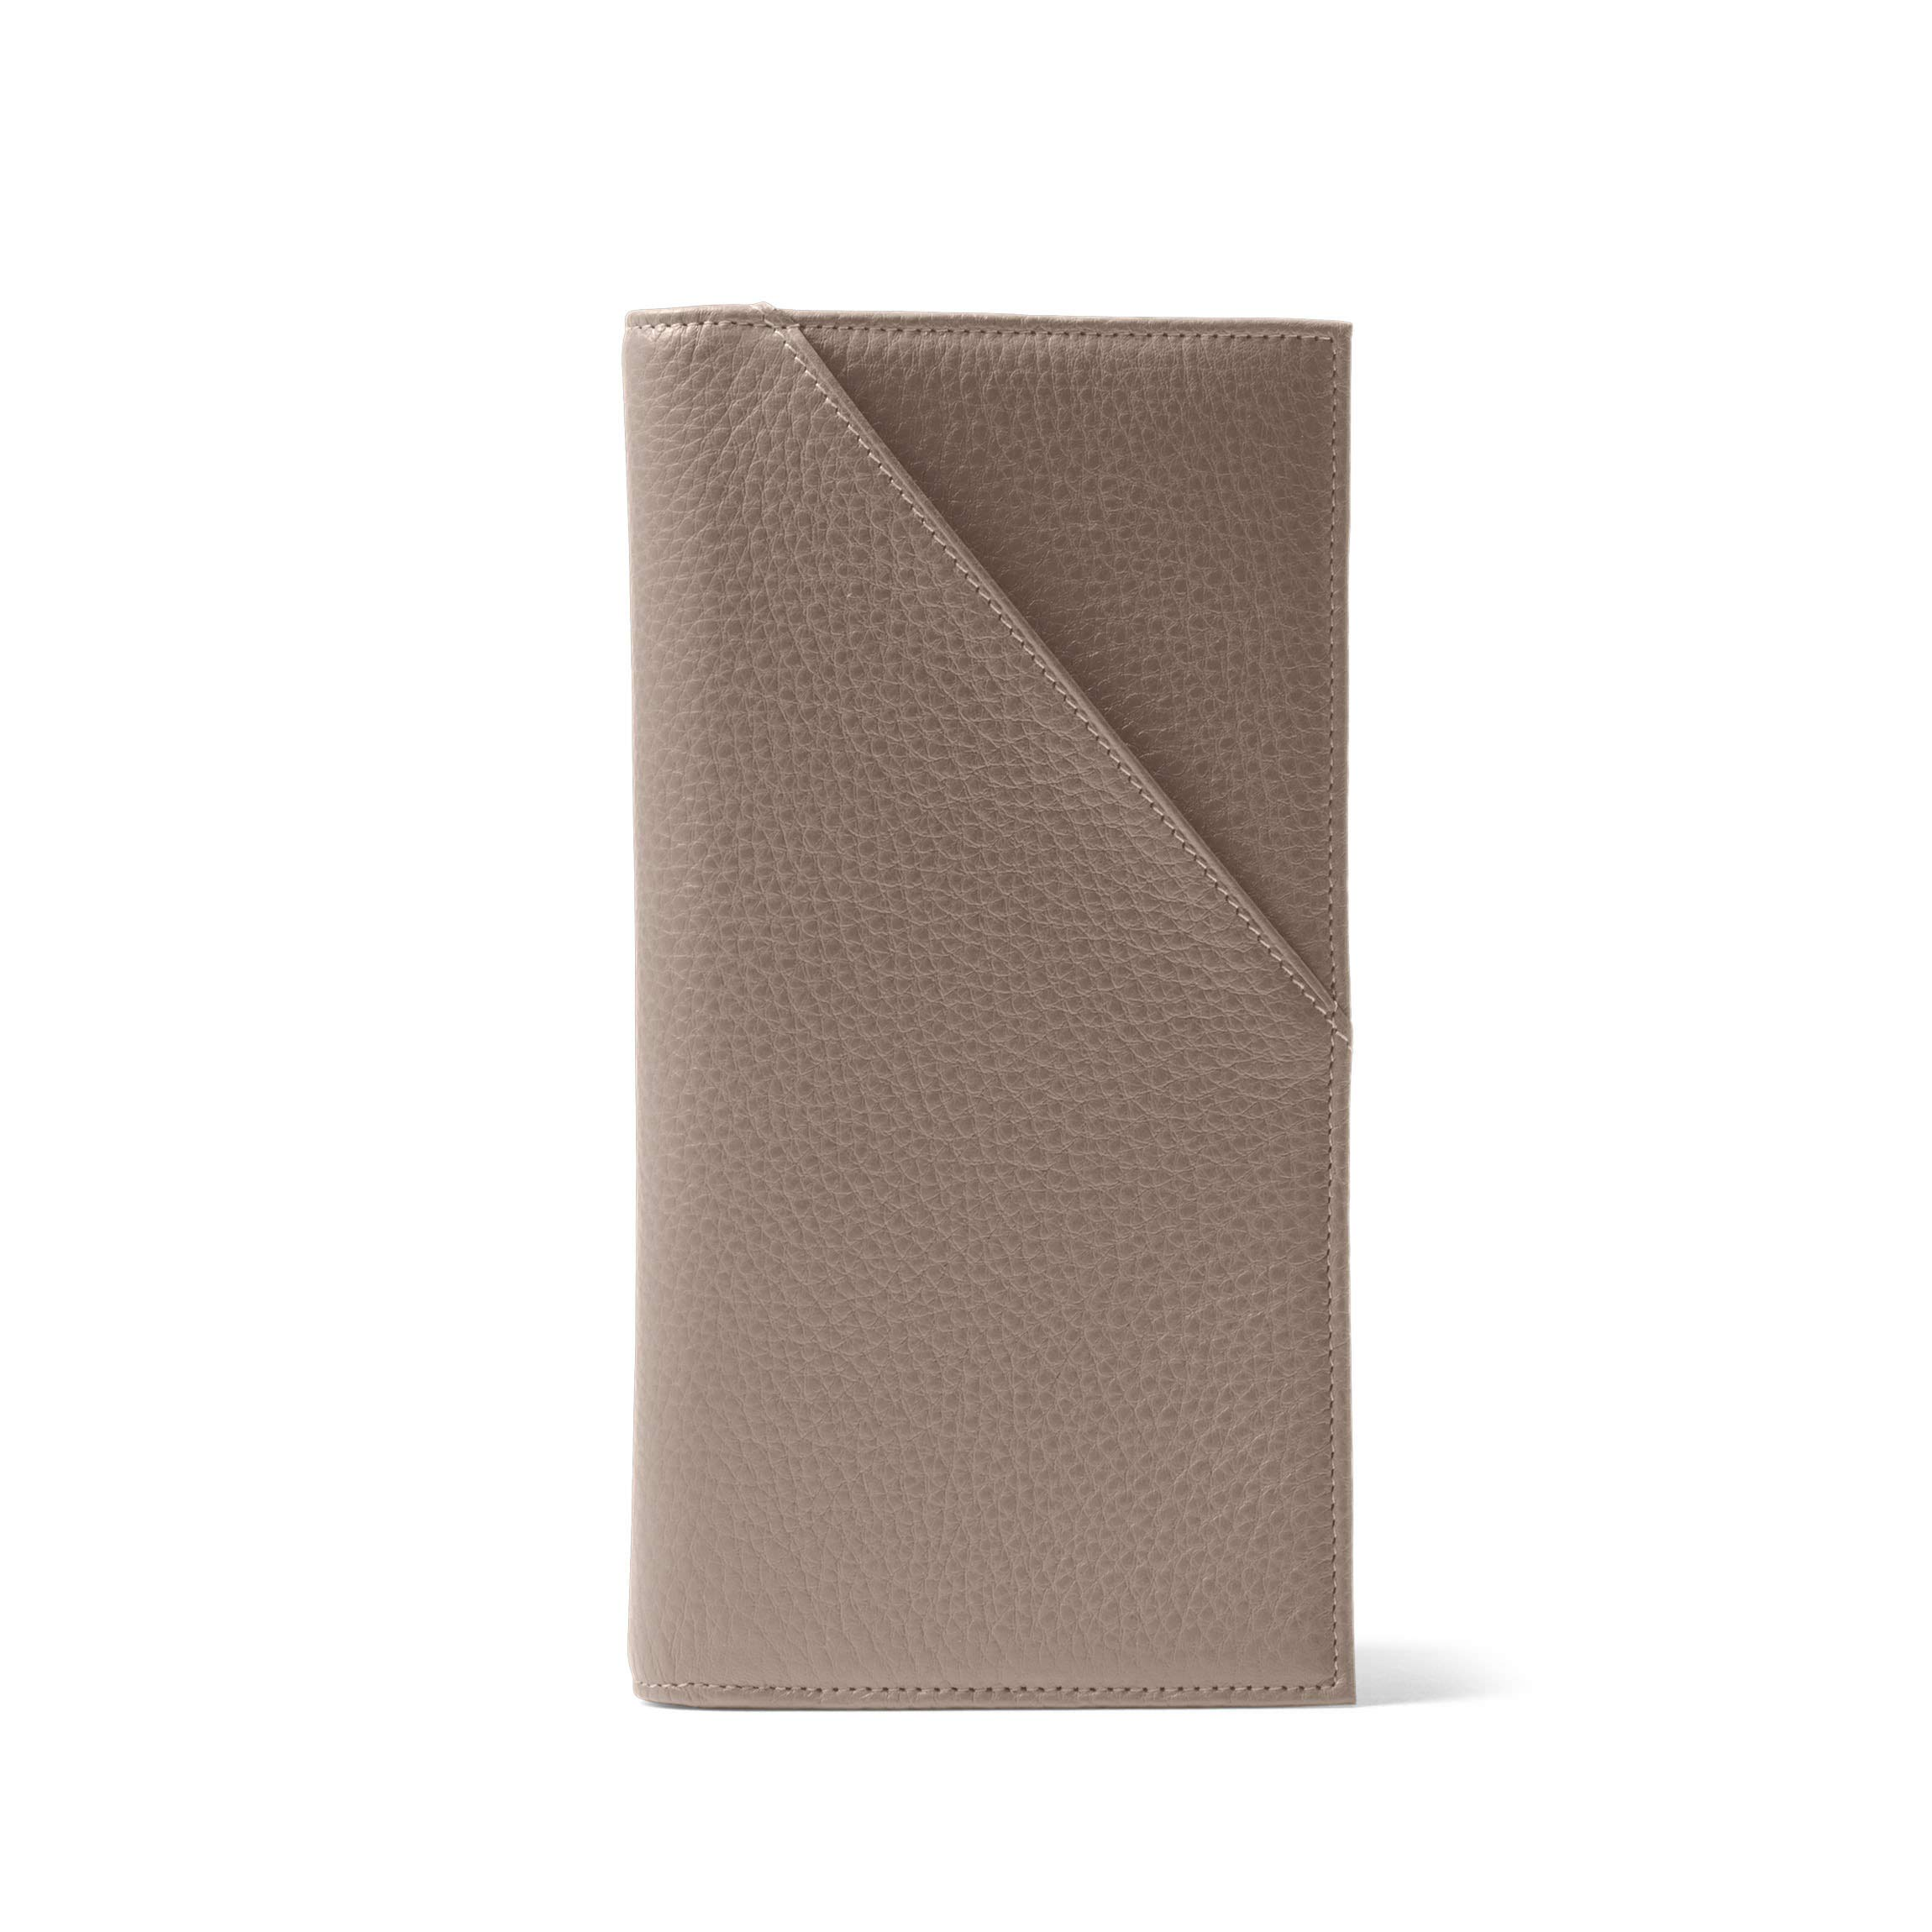 Travel Document Holder - Full Grain Leather Leather - Taupe (Beige)